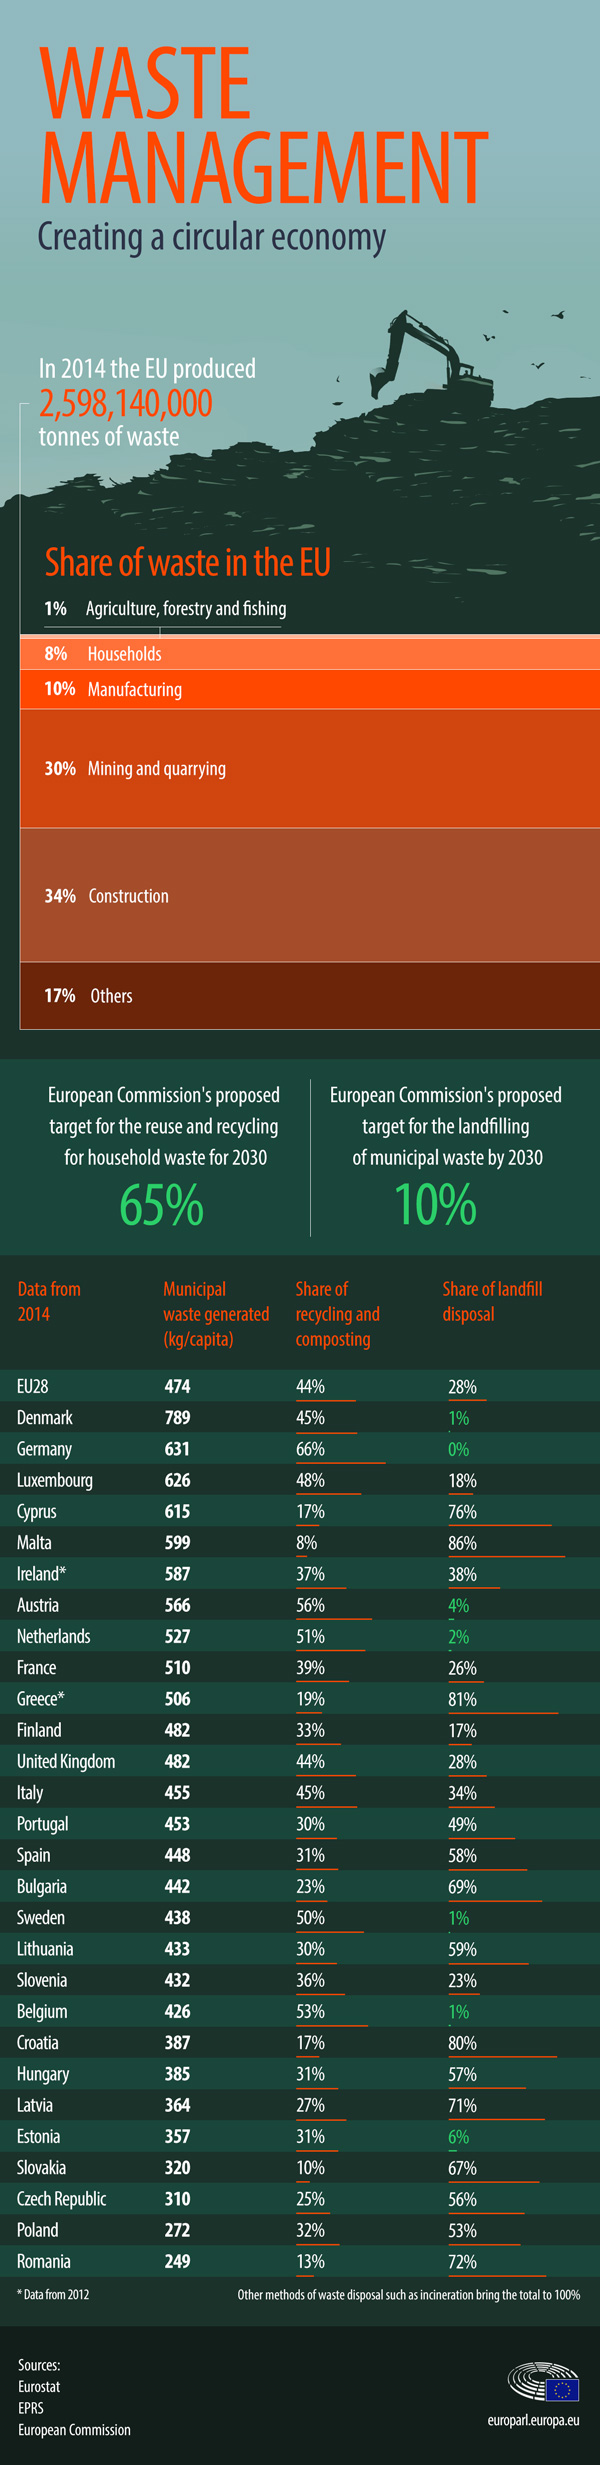 infographic illustration on waste management in the EU